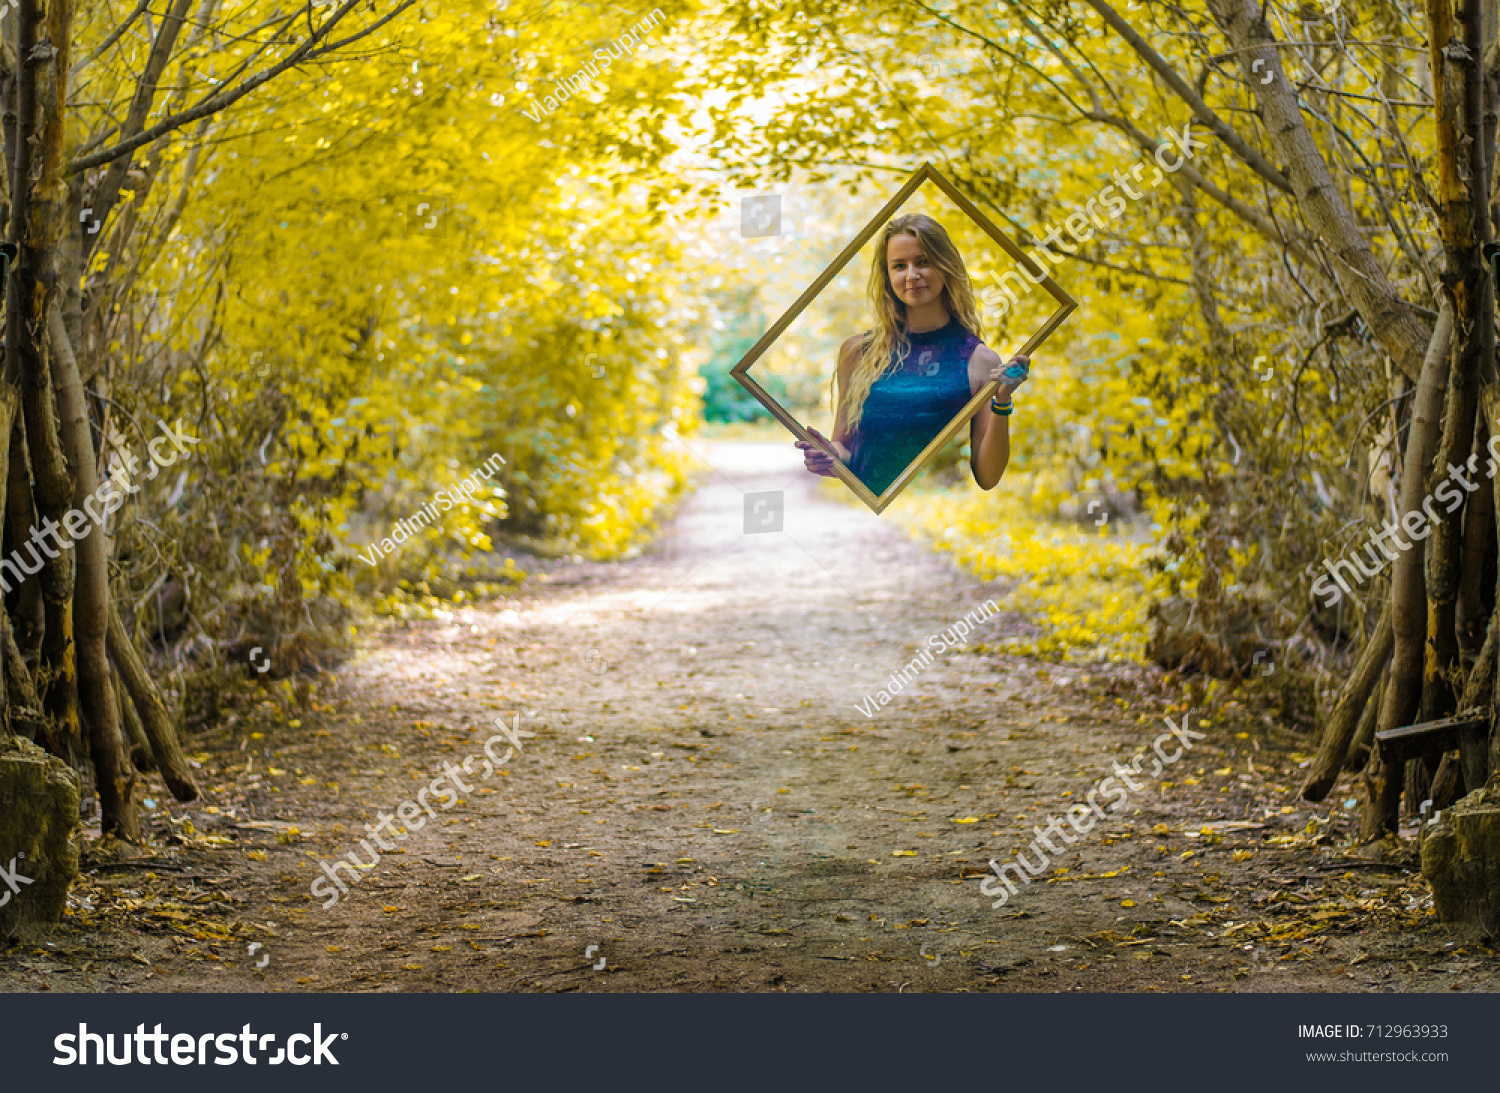 Girl Magic Transparent Frame Stock Photo 712963933 - Shutterstock